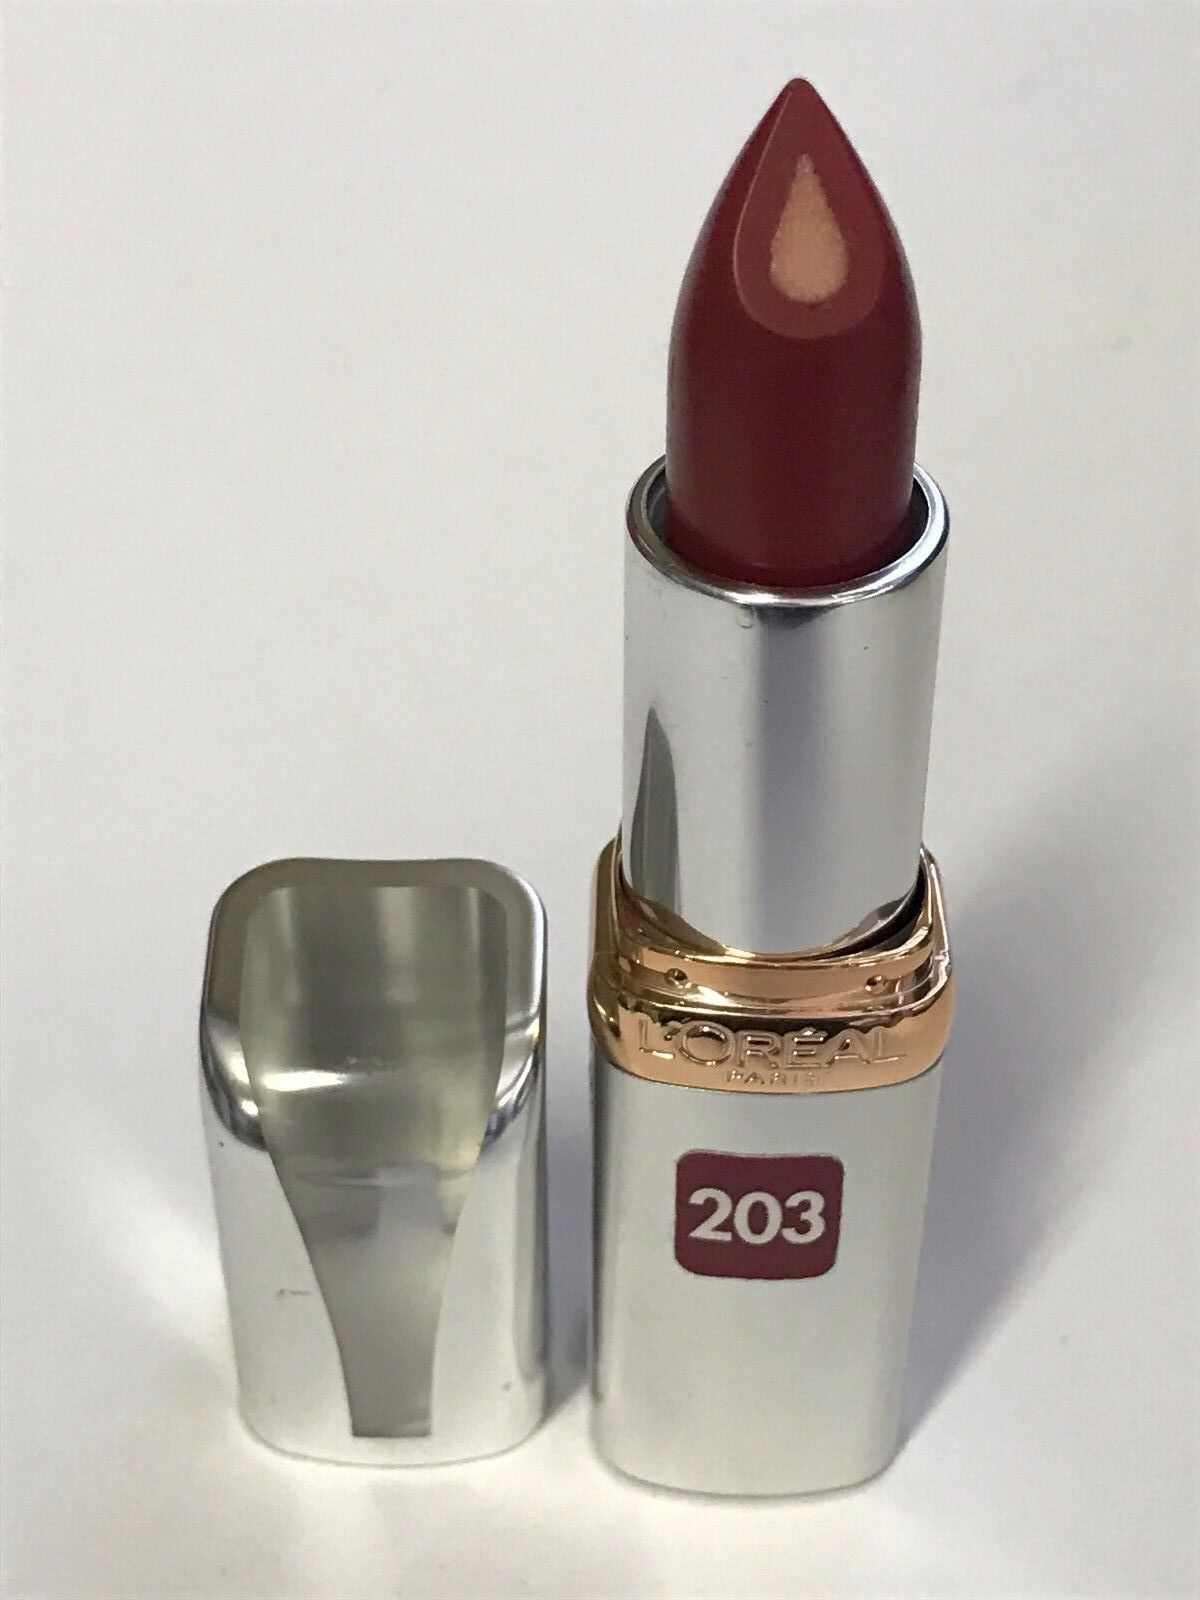 Loreal Colour Riche Serum Lipstick 203 Berry Exciting 2 Pk